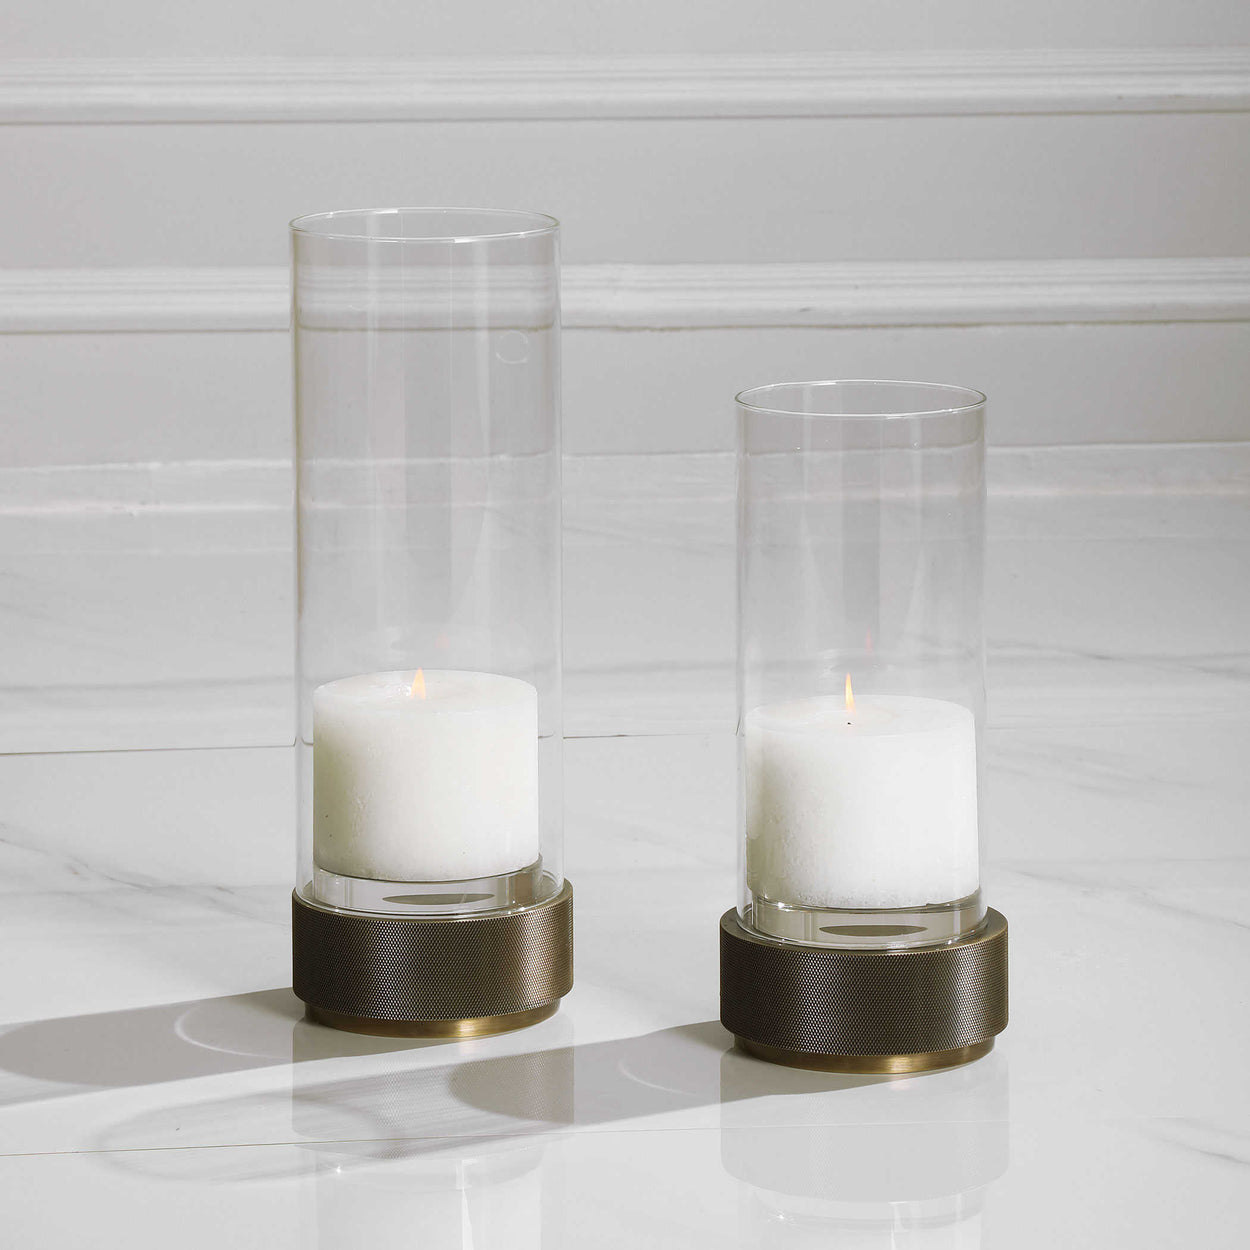 Sophisticated and traditional, these candleholders feature an iron base finished in antique brushed brass, accented by crystal details and a clear glass hurricane. Sizes: S-5x11x5, L-5x14x5